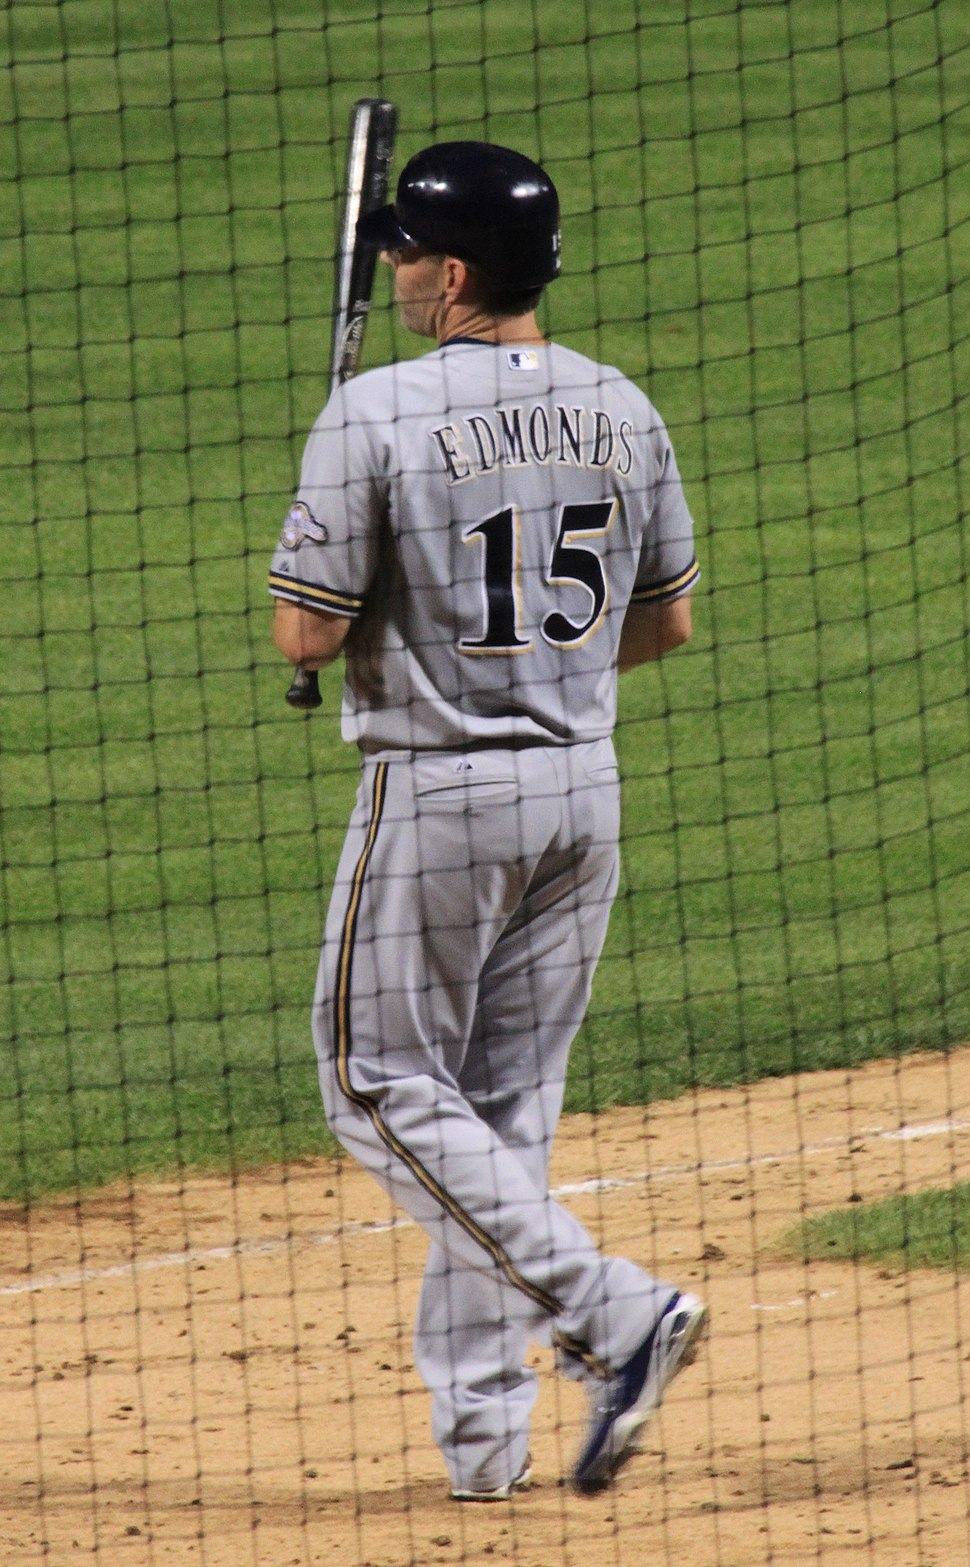 Jim Edmonds on August 2, 2010